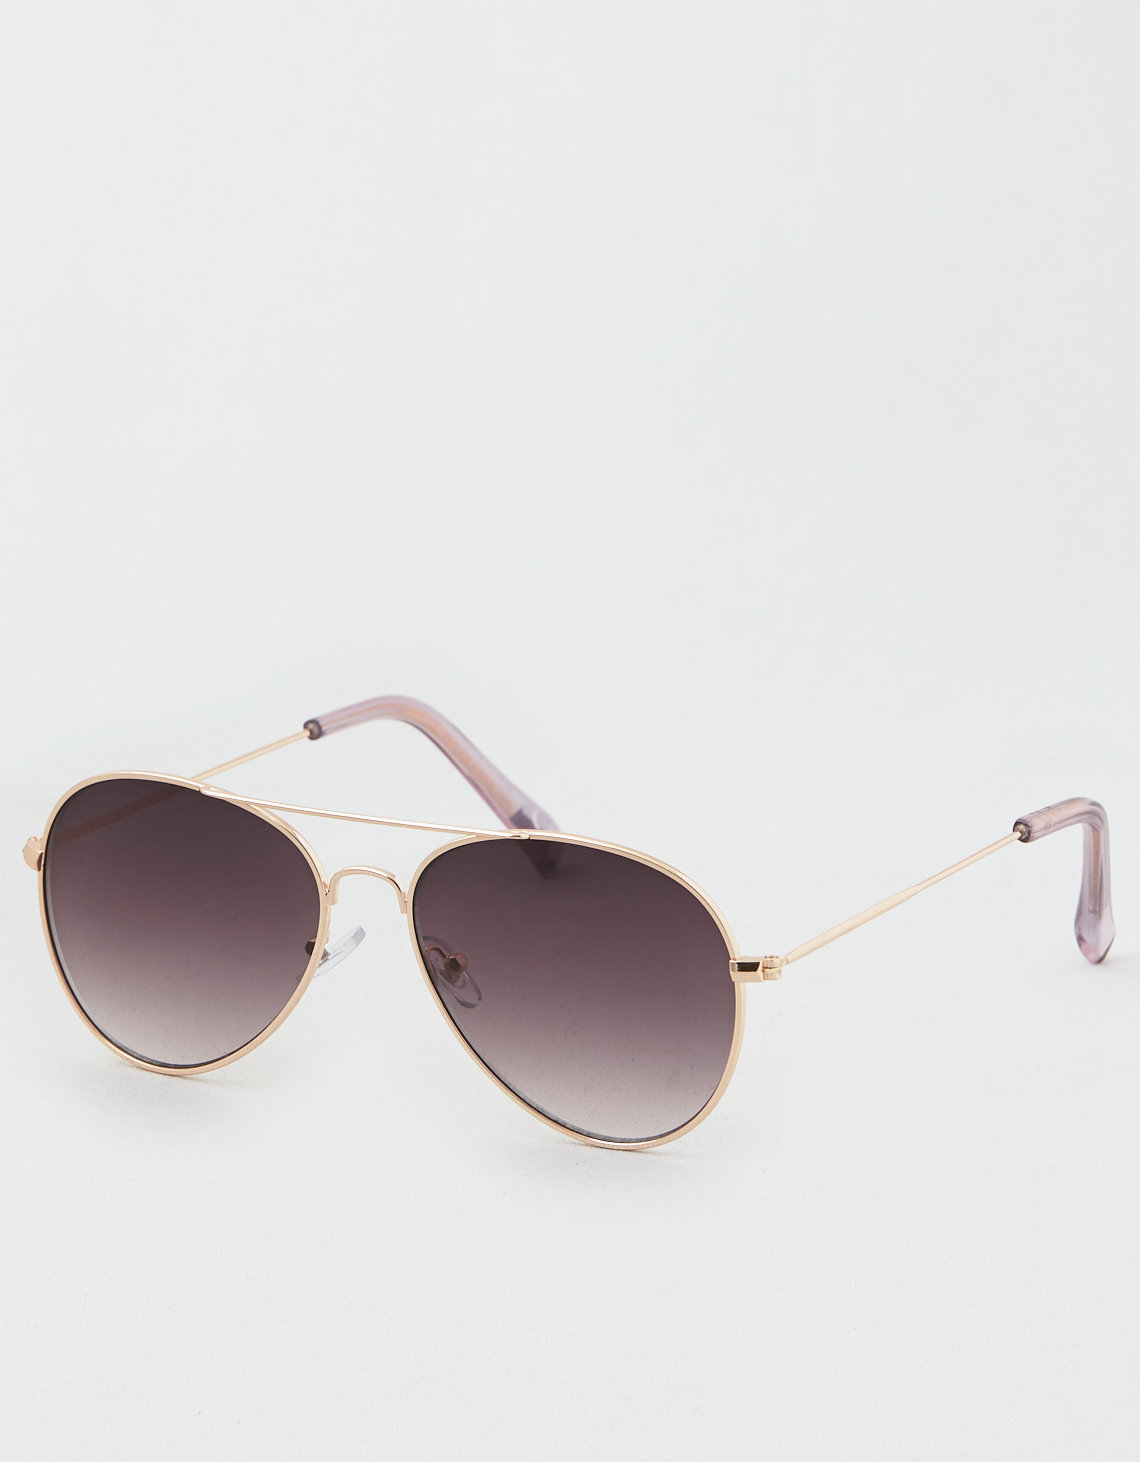 AE Smoke Flat Lens Aviator Sunglasses